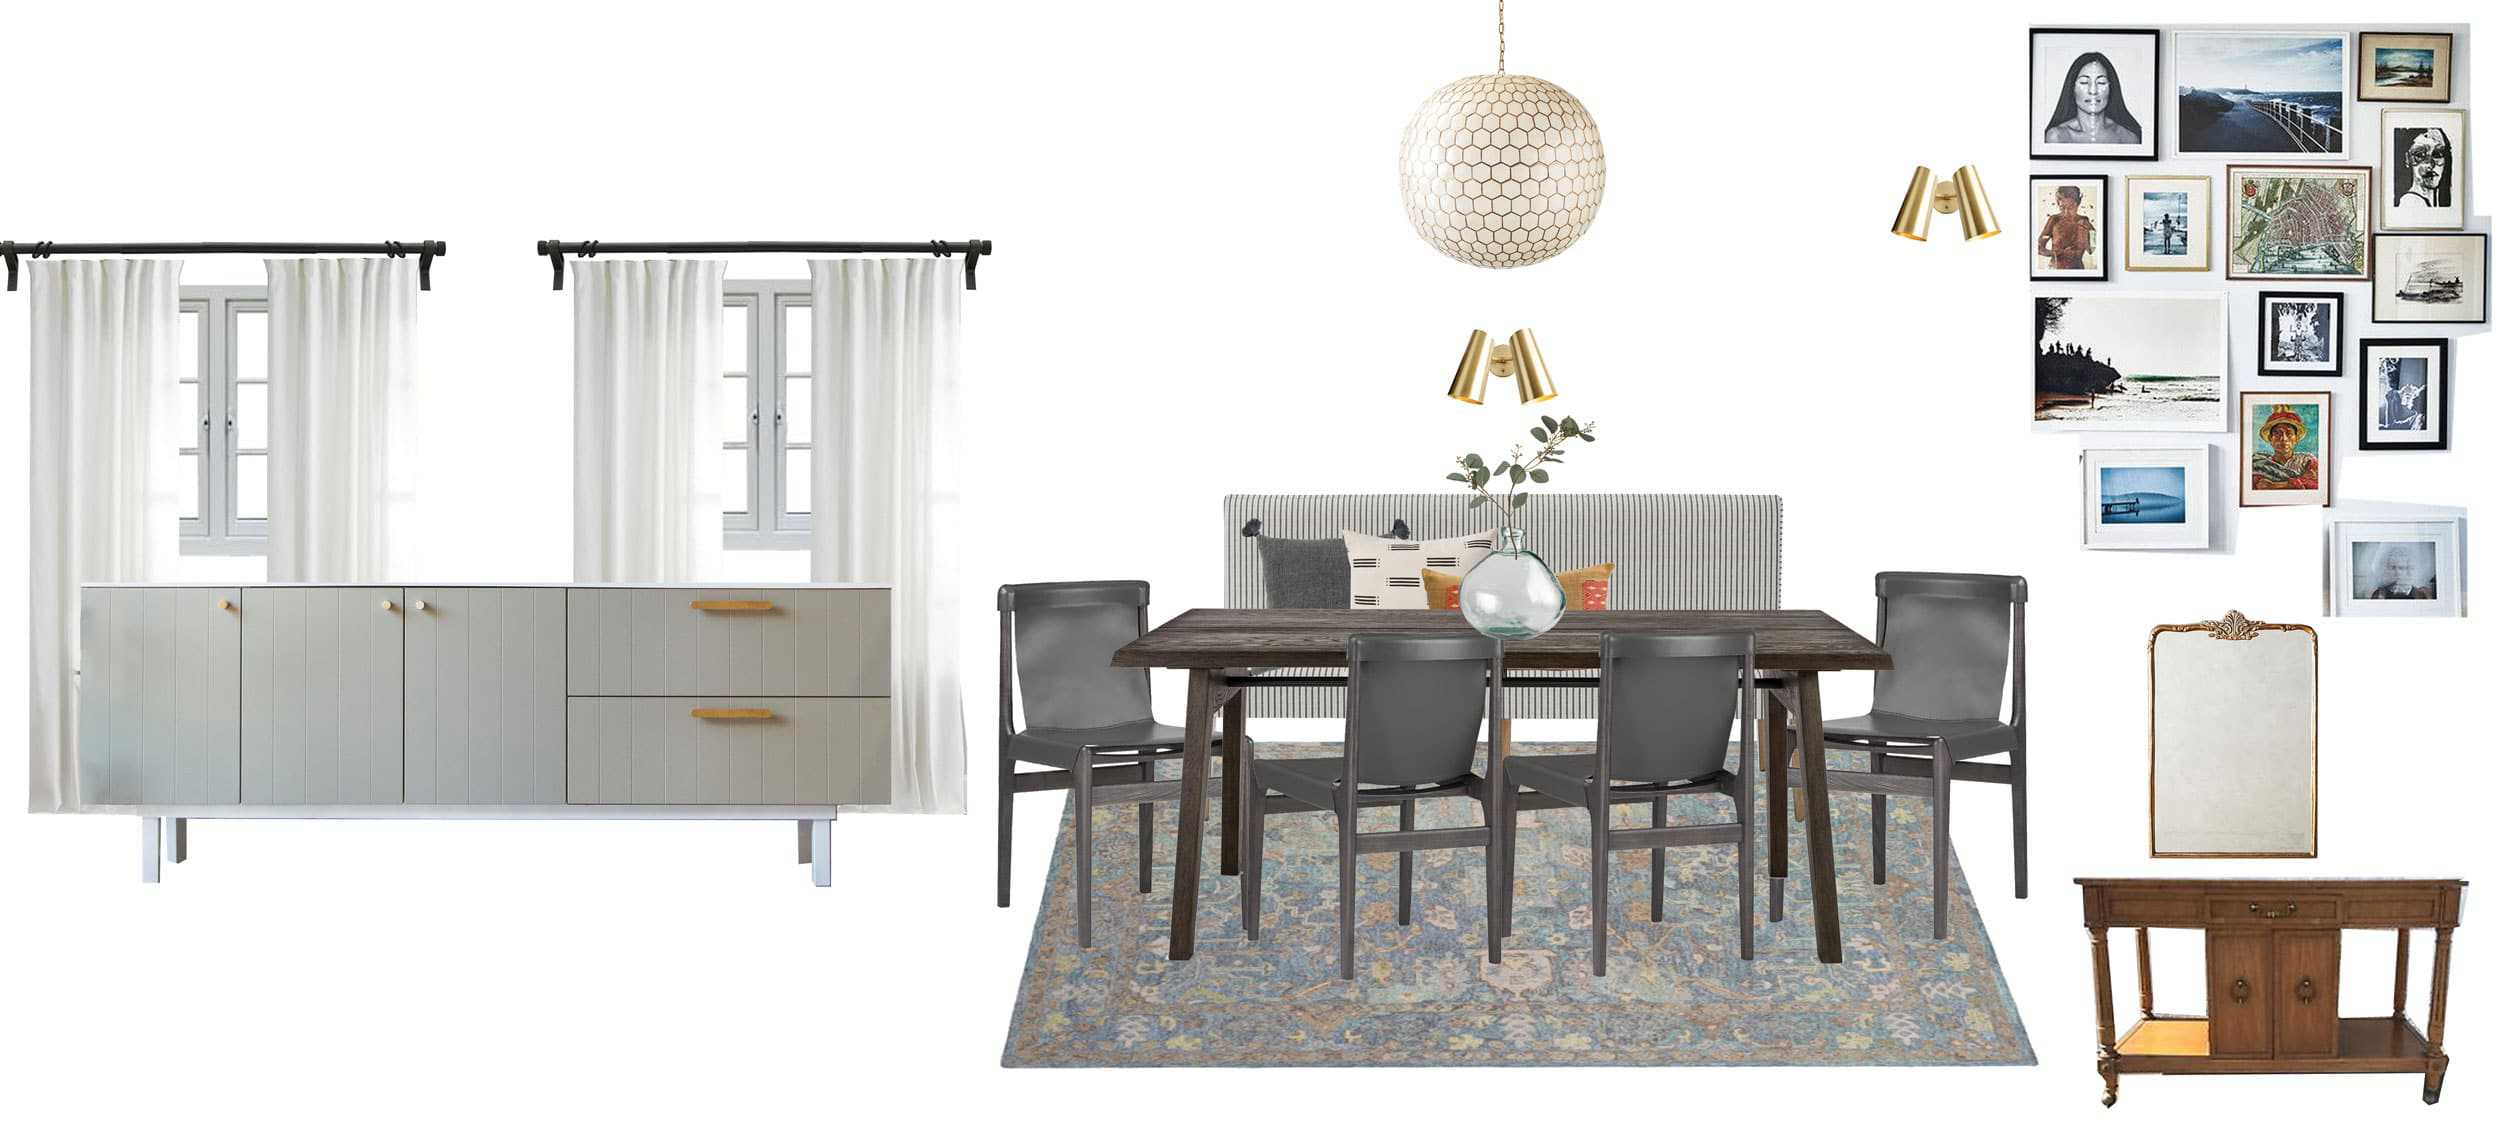 Dining Room Moodboard 4